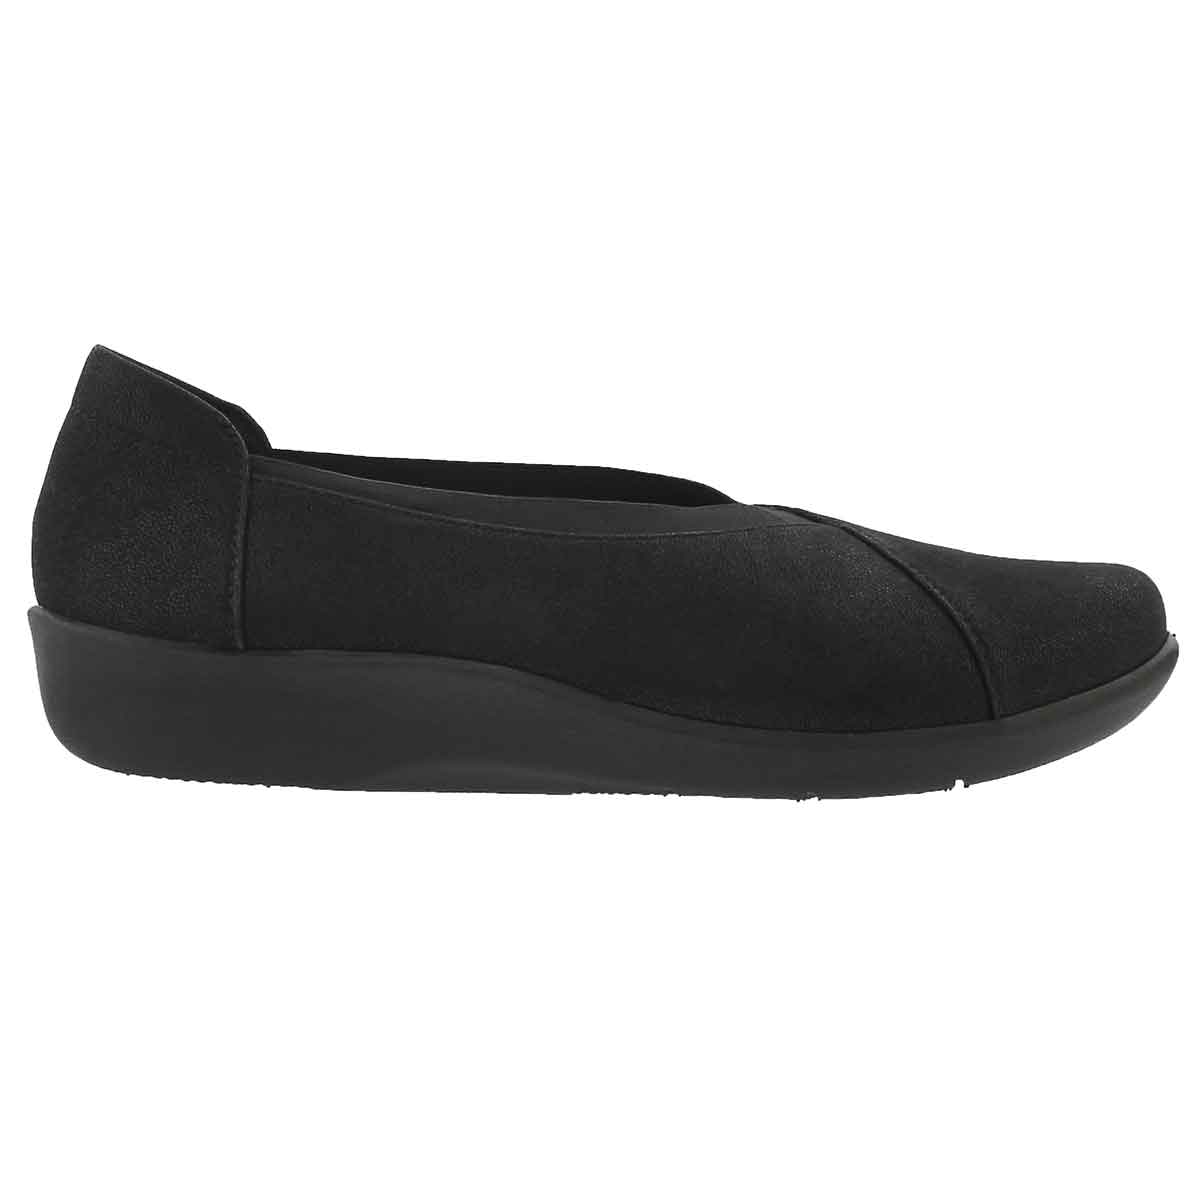 Lds Sillian Holly black casual loafer